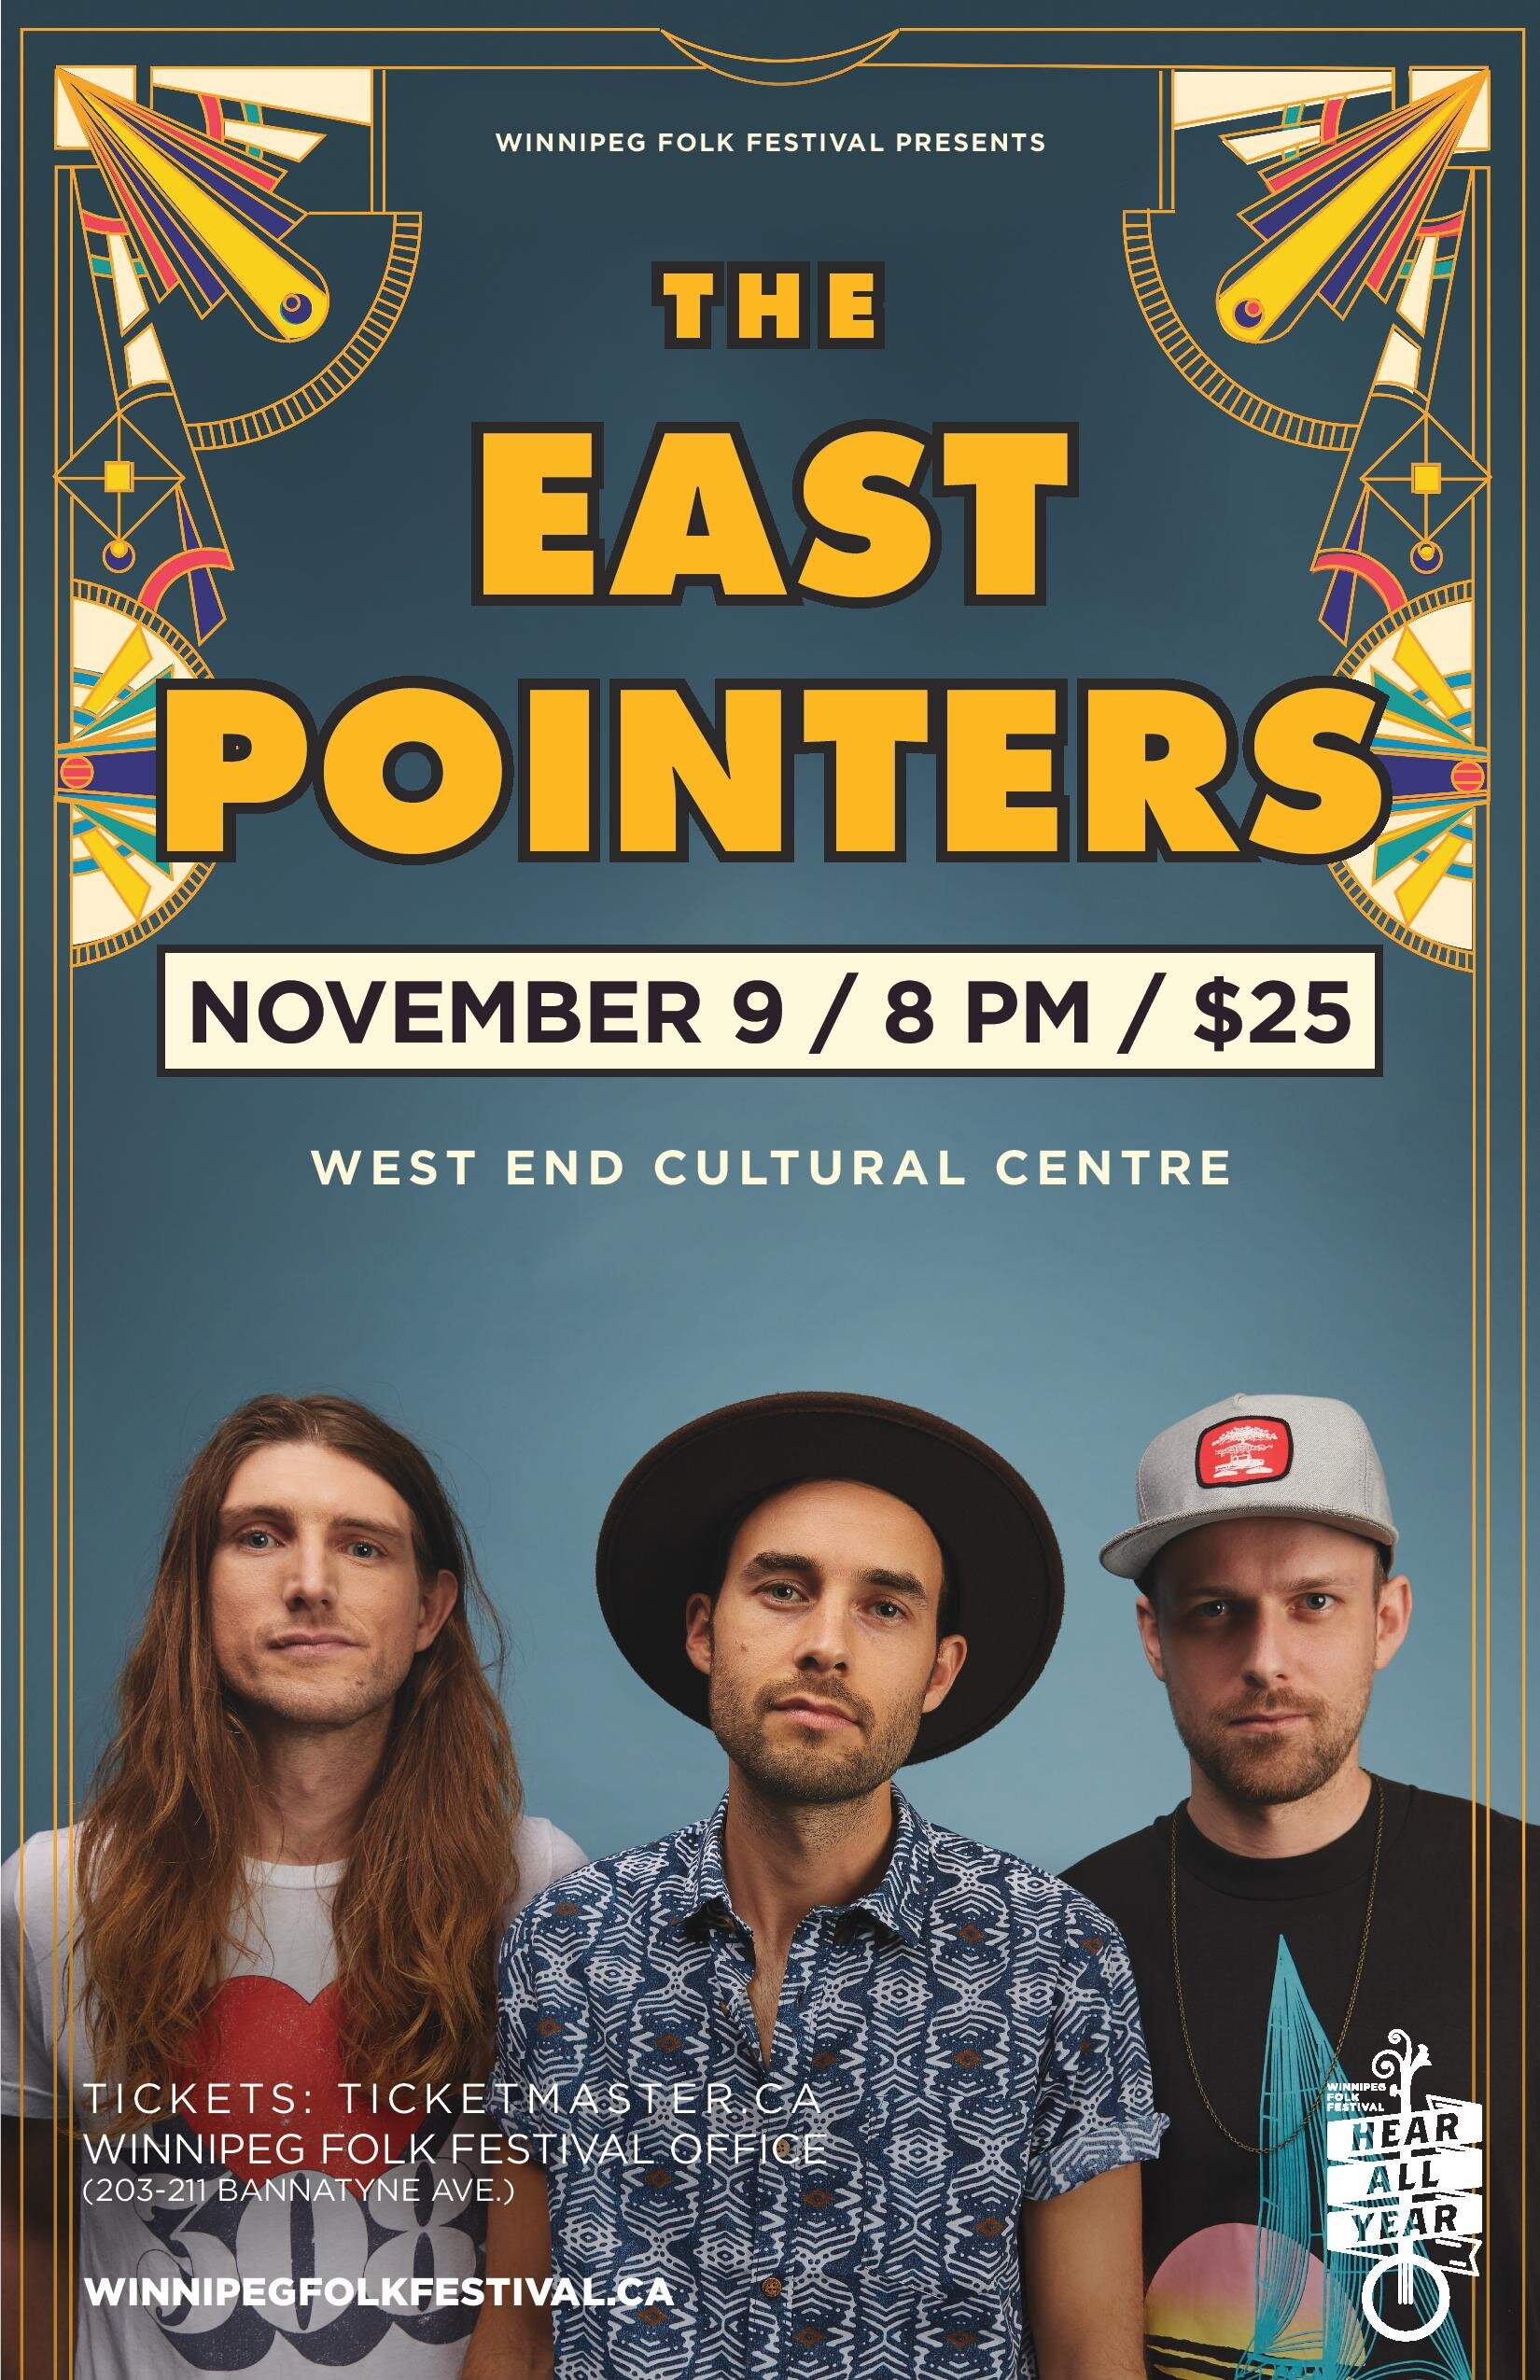 191109 The East Pointers.jpg